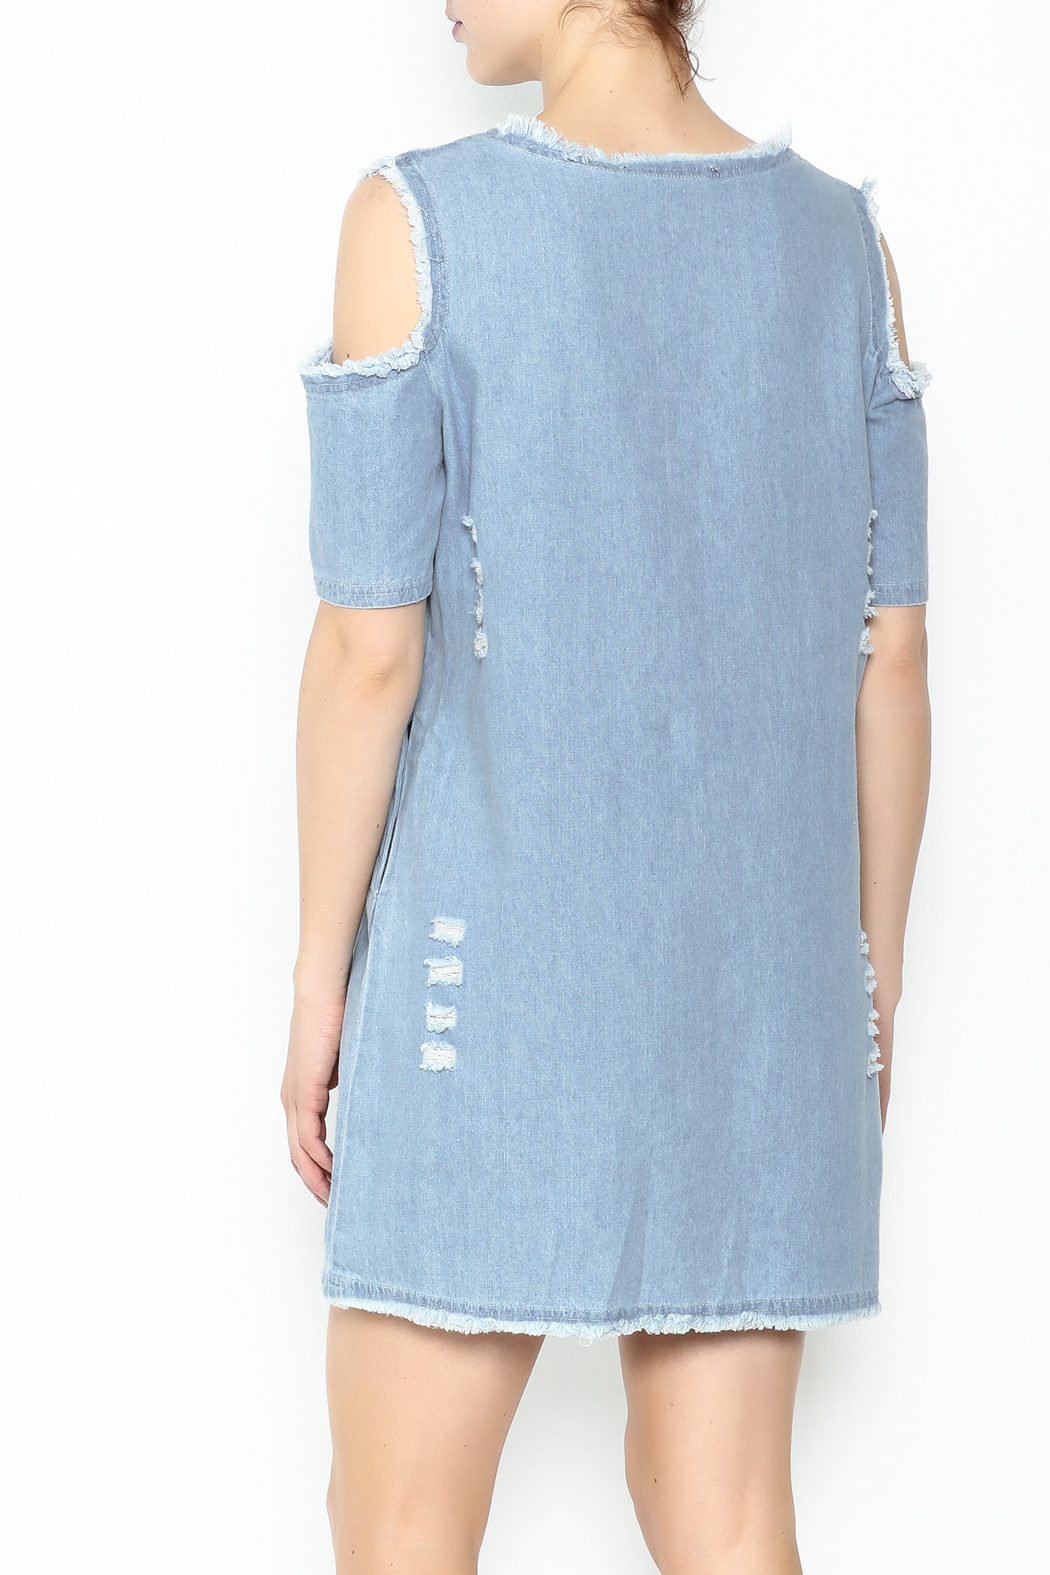 Goodtime Denim Tunic Dress - Back Cropped Image